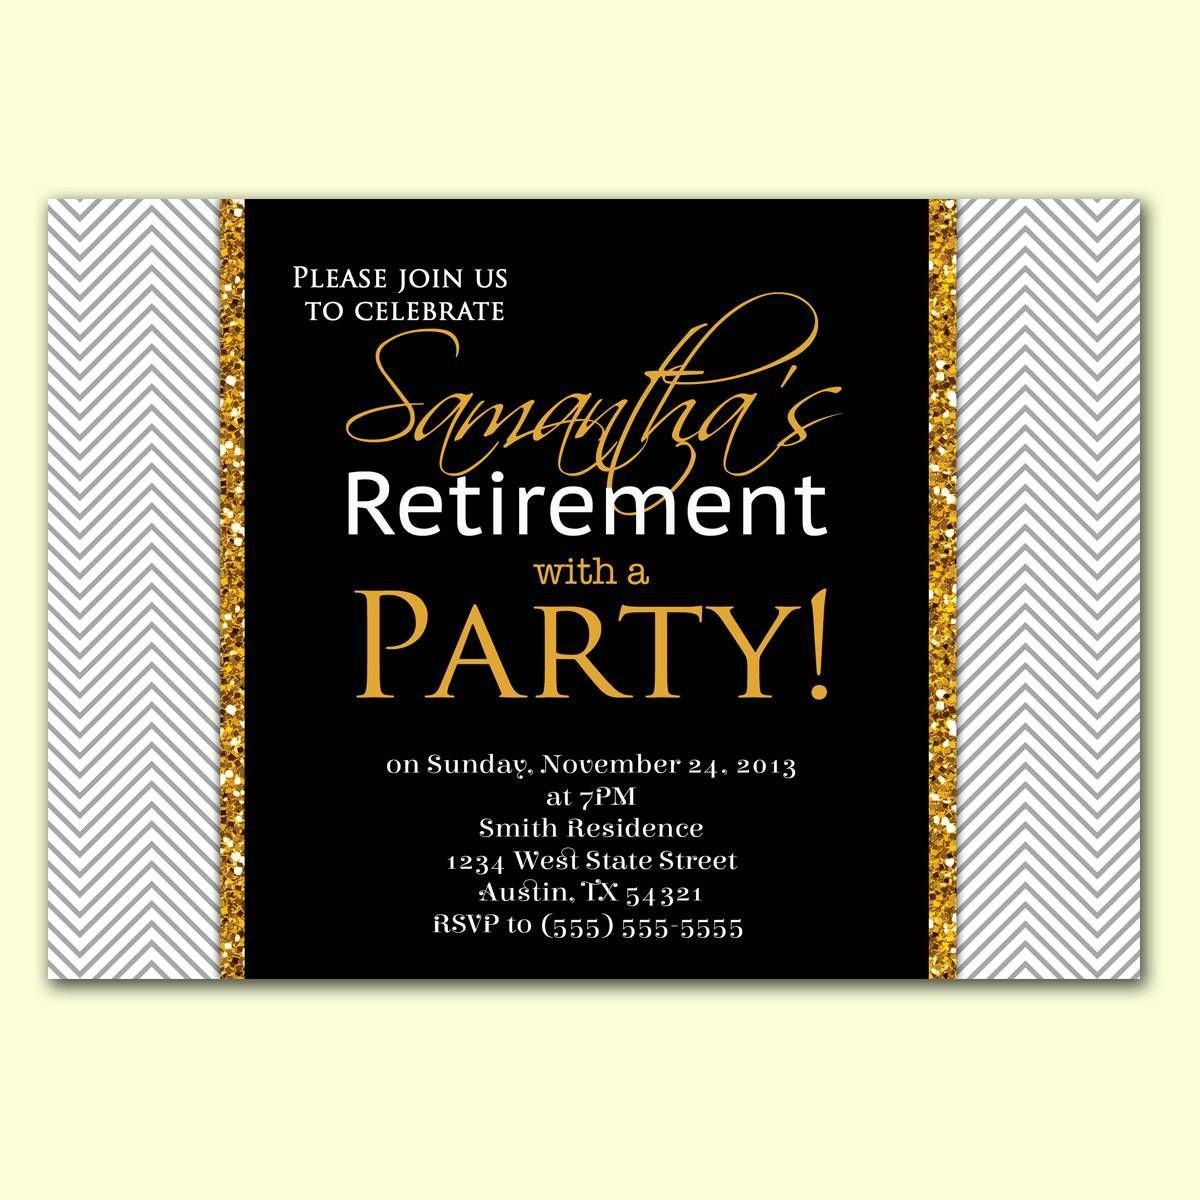 002 Imposing Retirement Party Invite Template Word Free Highest Quality Full